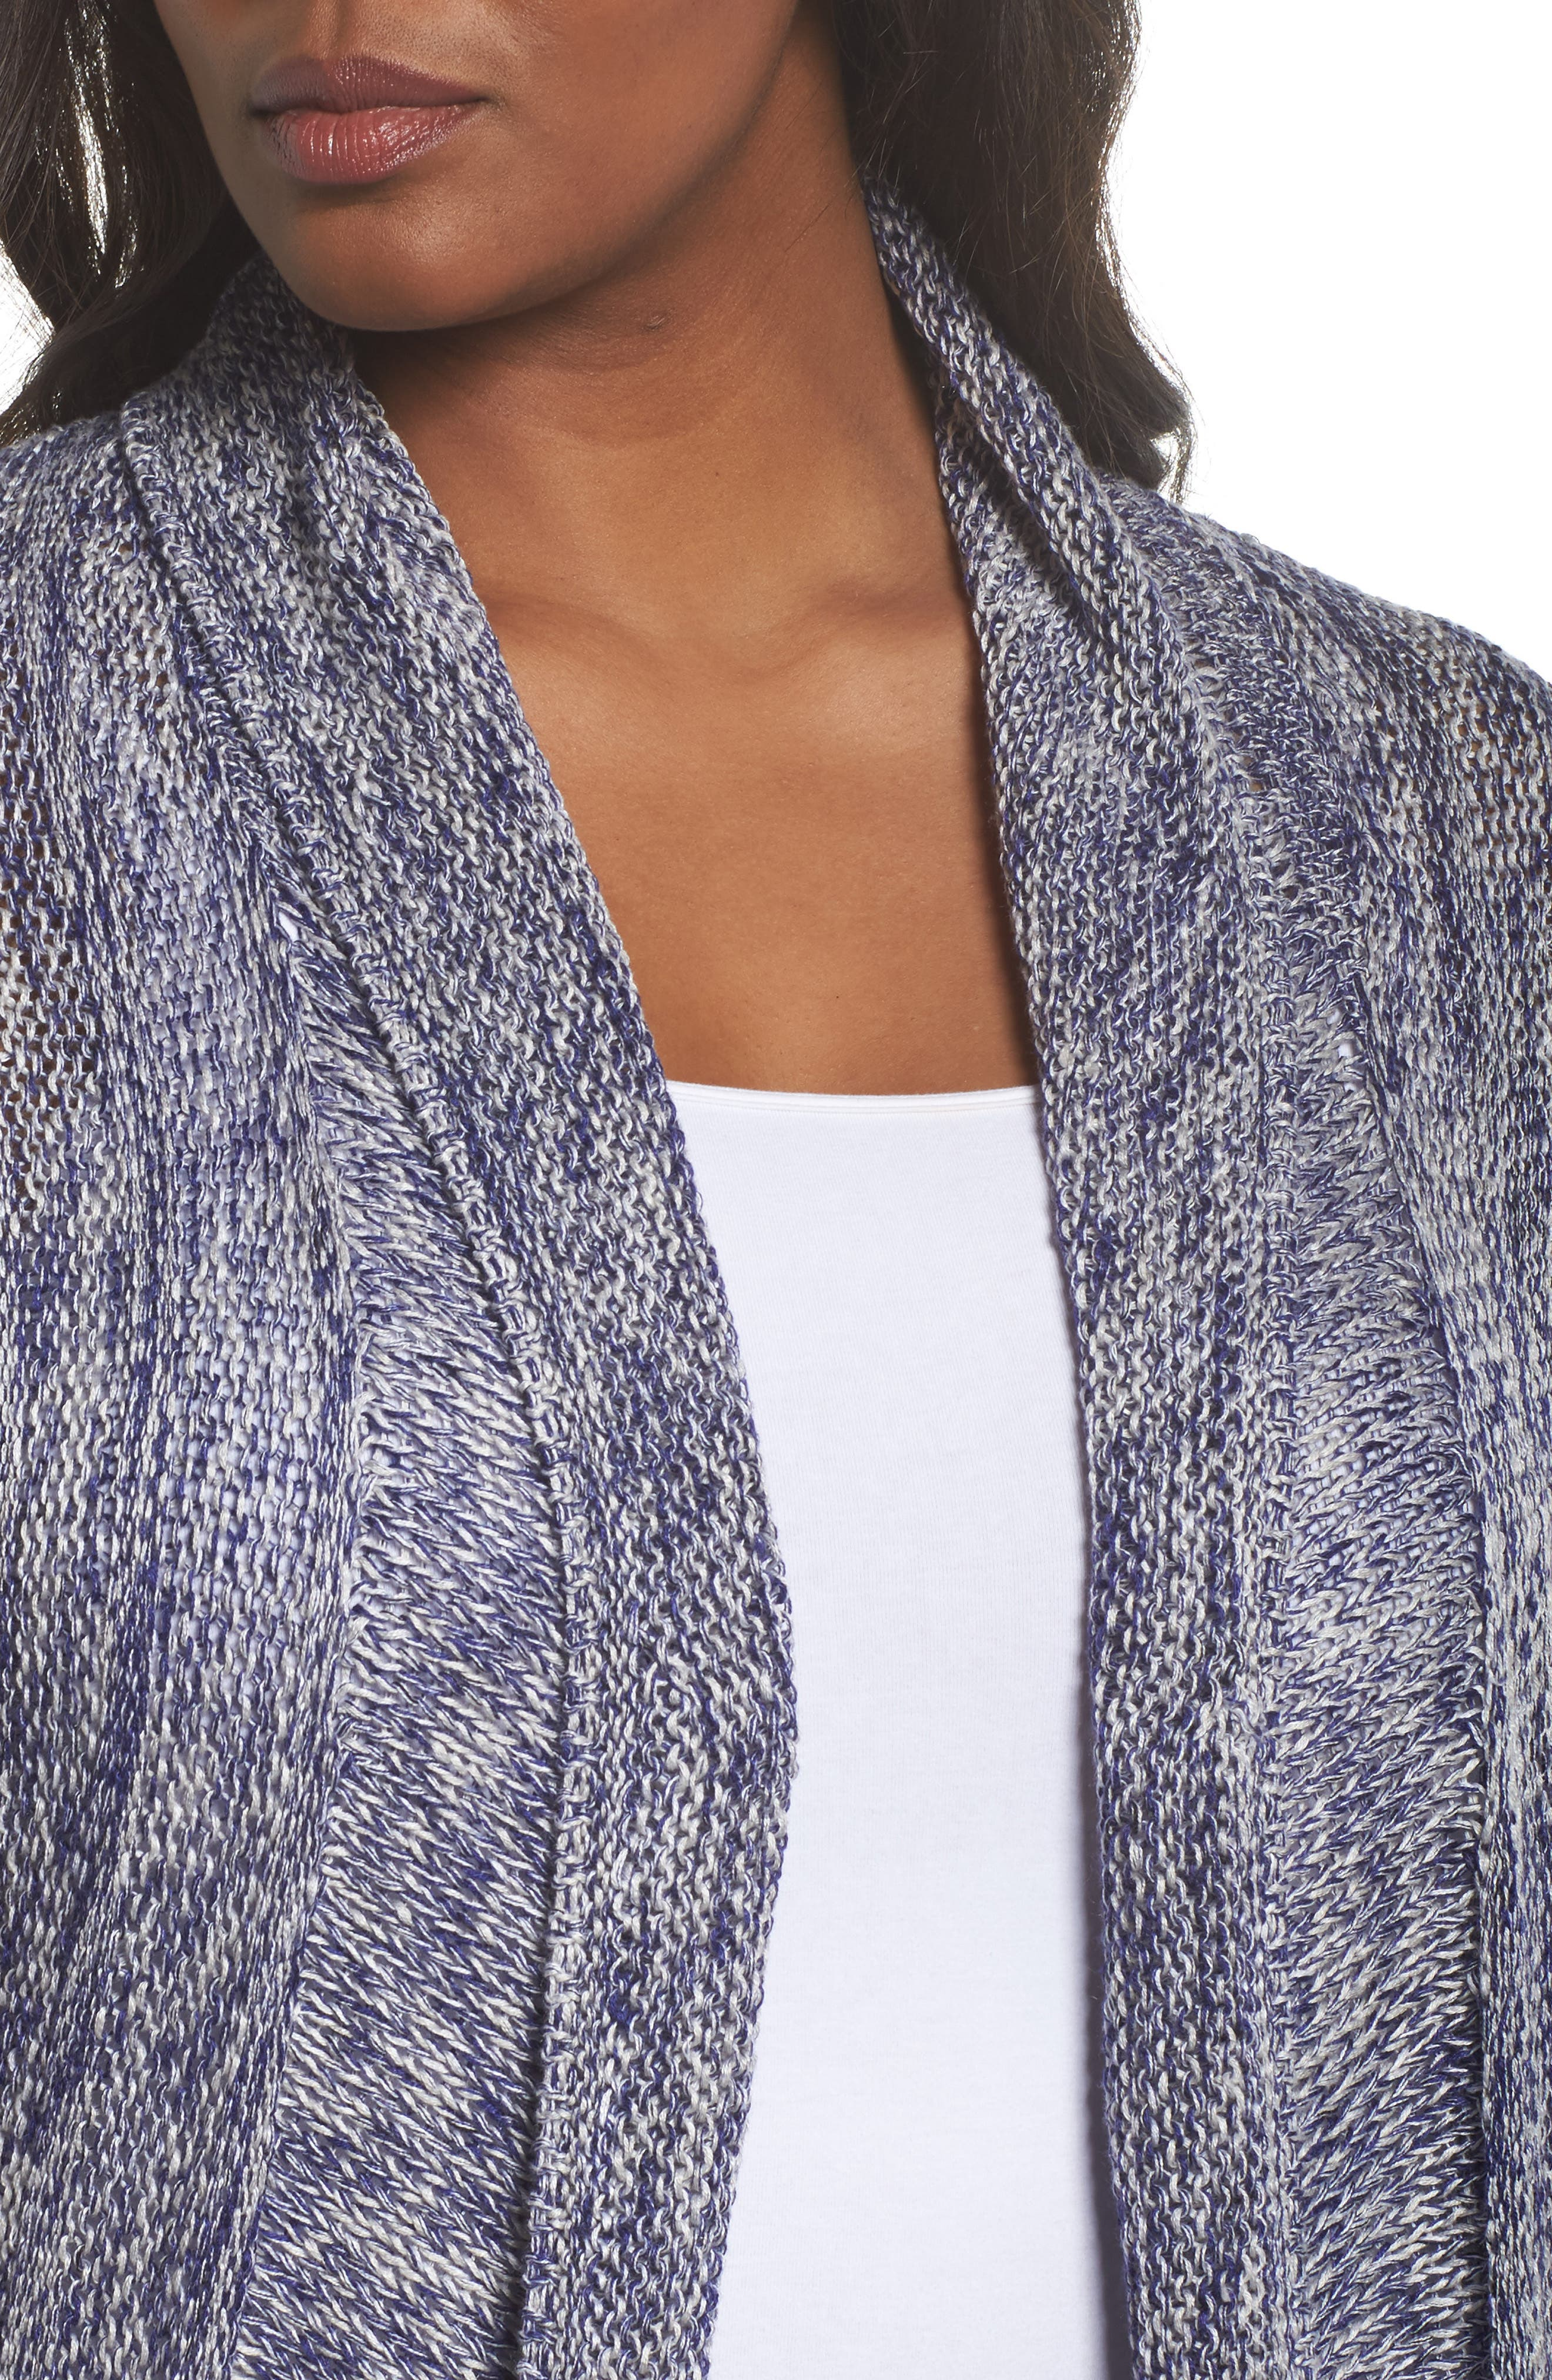 Weather Mix Cardigan,                             Alternate thumbnail 4, color,                             Multi